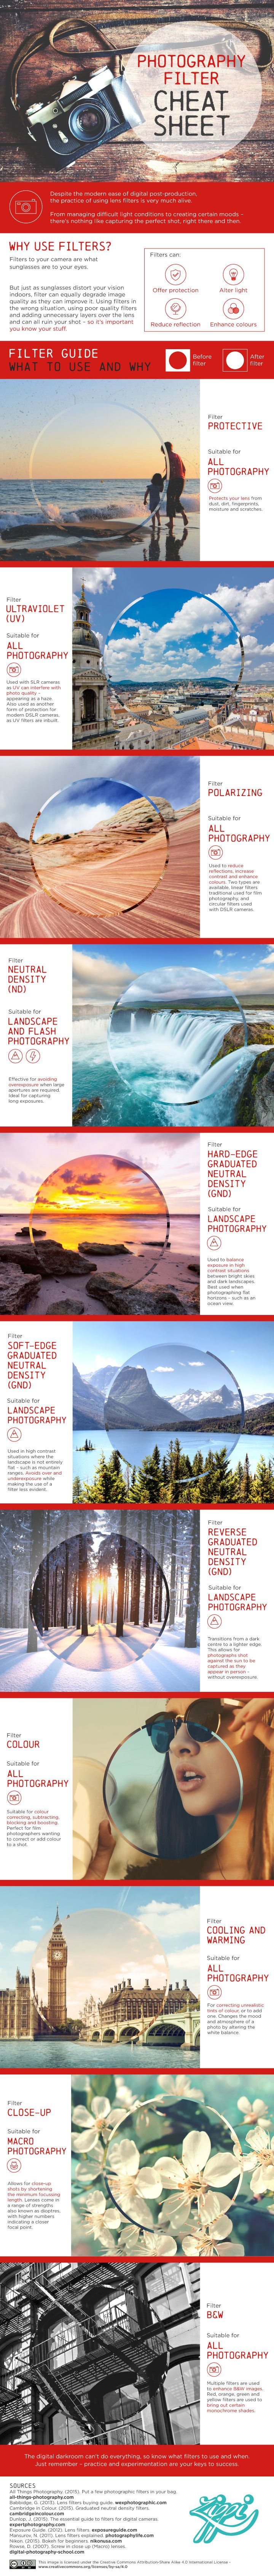 Photography Filter Cheat Sheet - Imgur || only ND filters are really needed. occasionally will use protective / UV filters, but most of this stuff can be done post production w/ software.